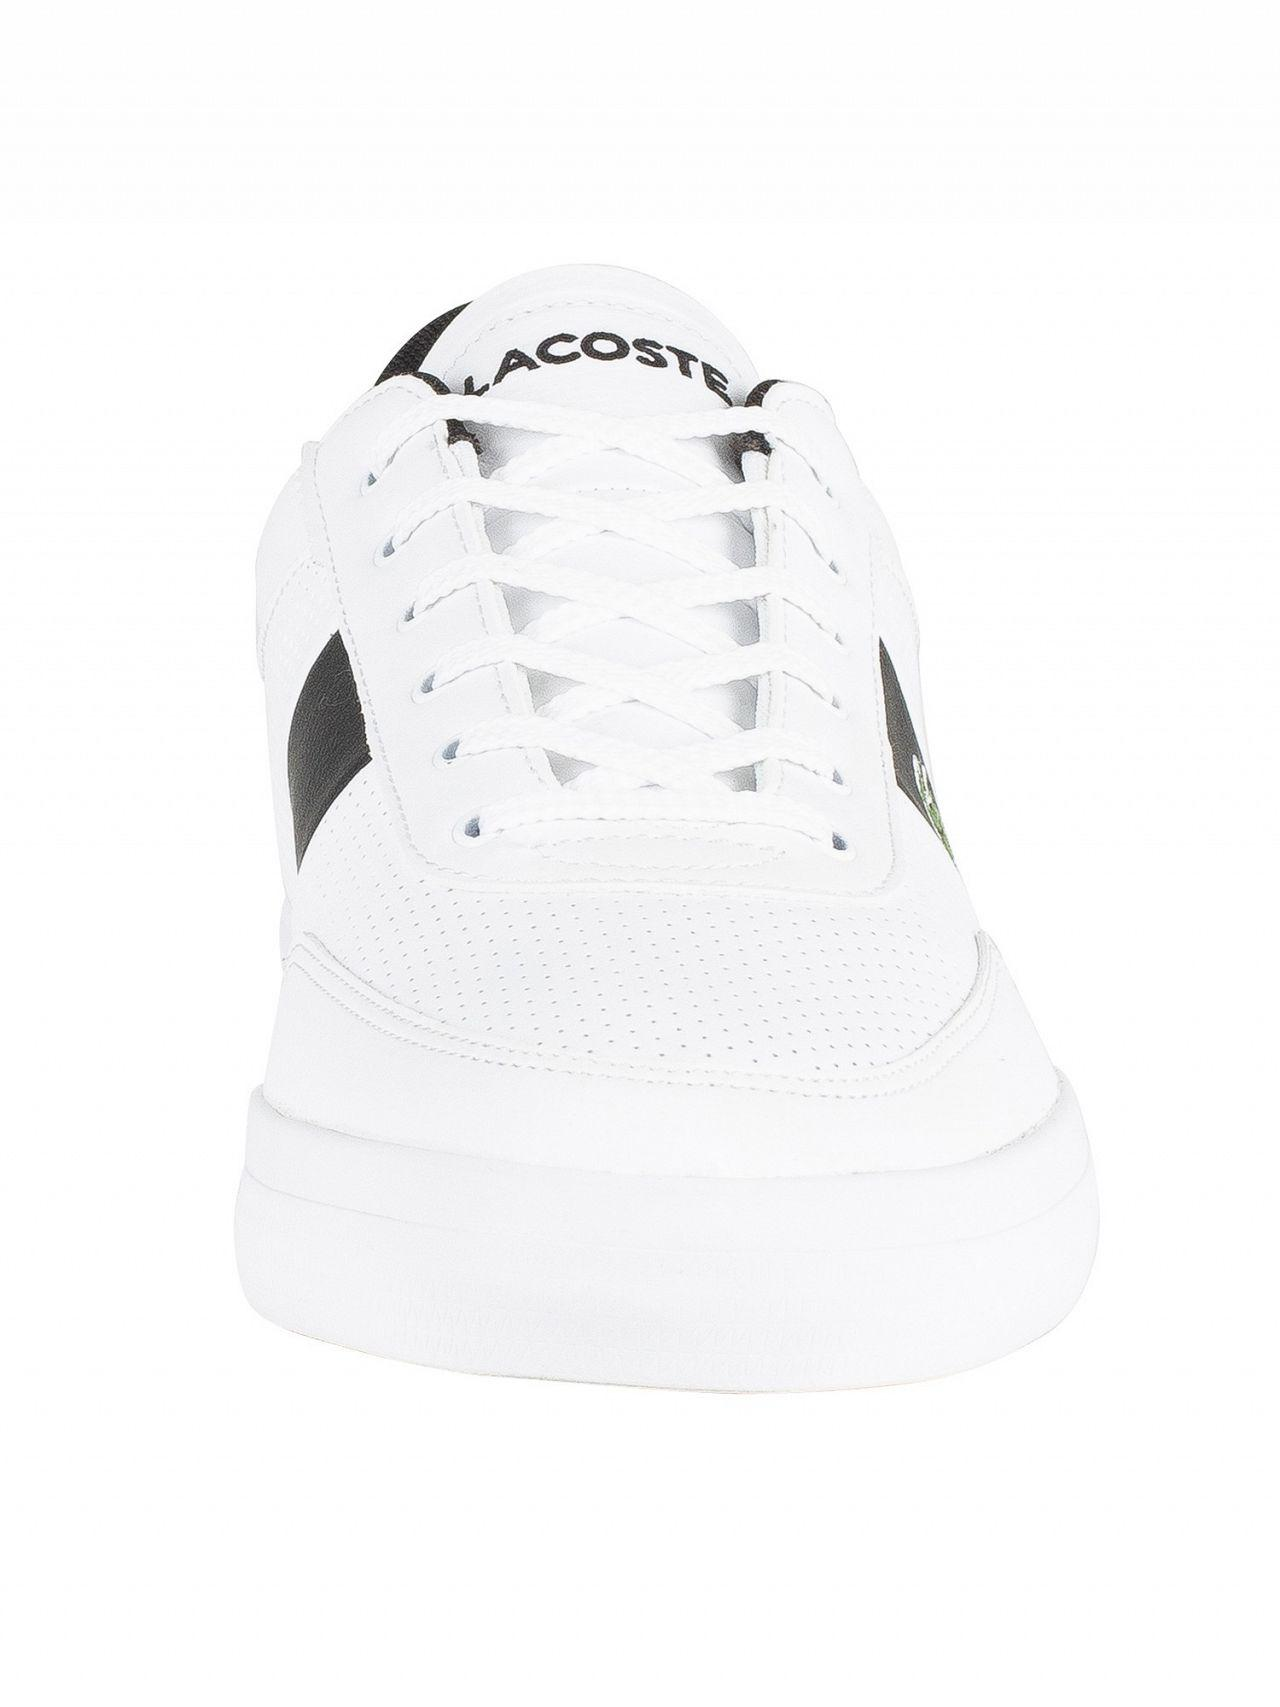 38be99760 Lyst - Lacoste White black Court-master 119 2 Leather Trainers in White for  Men - Save 20%